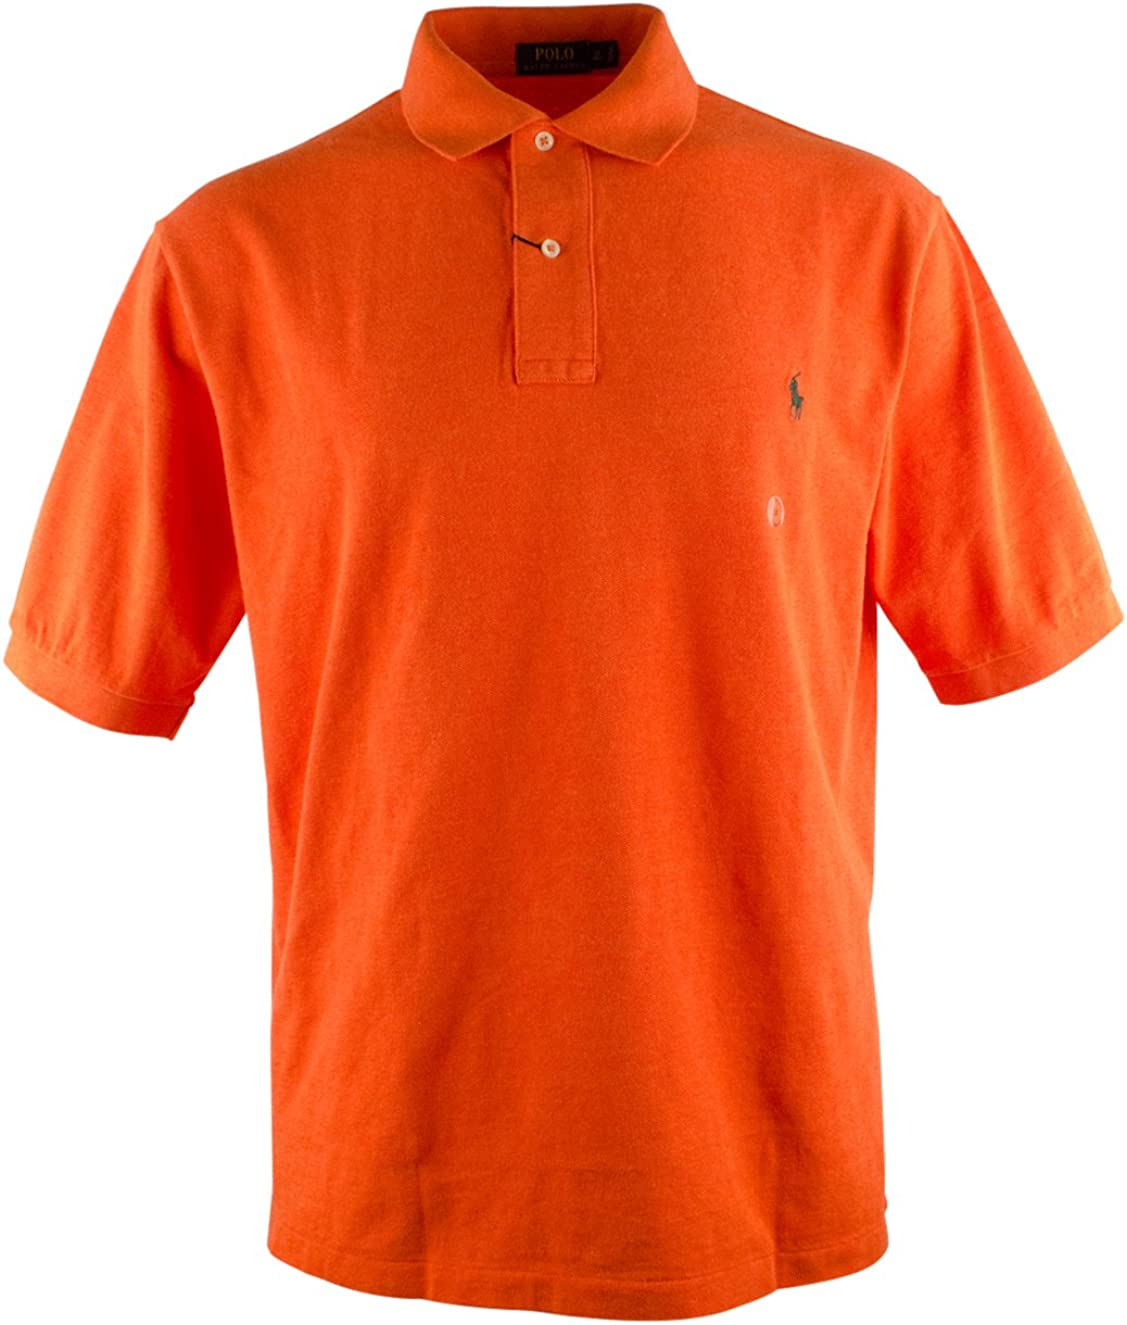 Men's Big and Tall Classic Fit Short Sleeve Polo Shirt